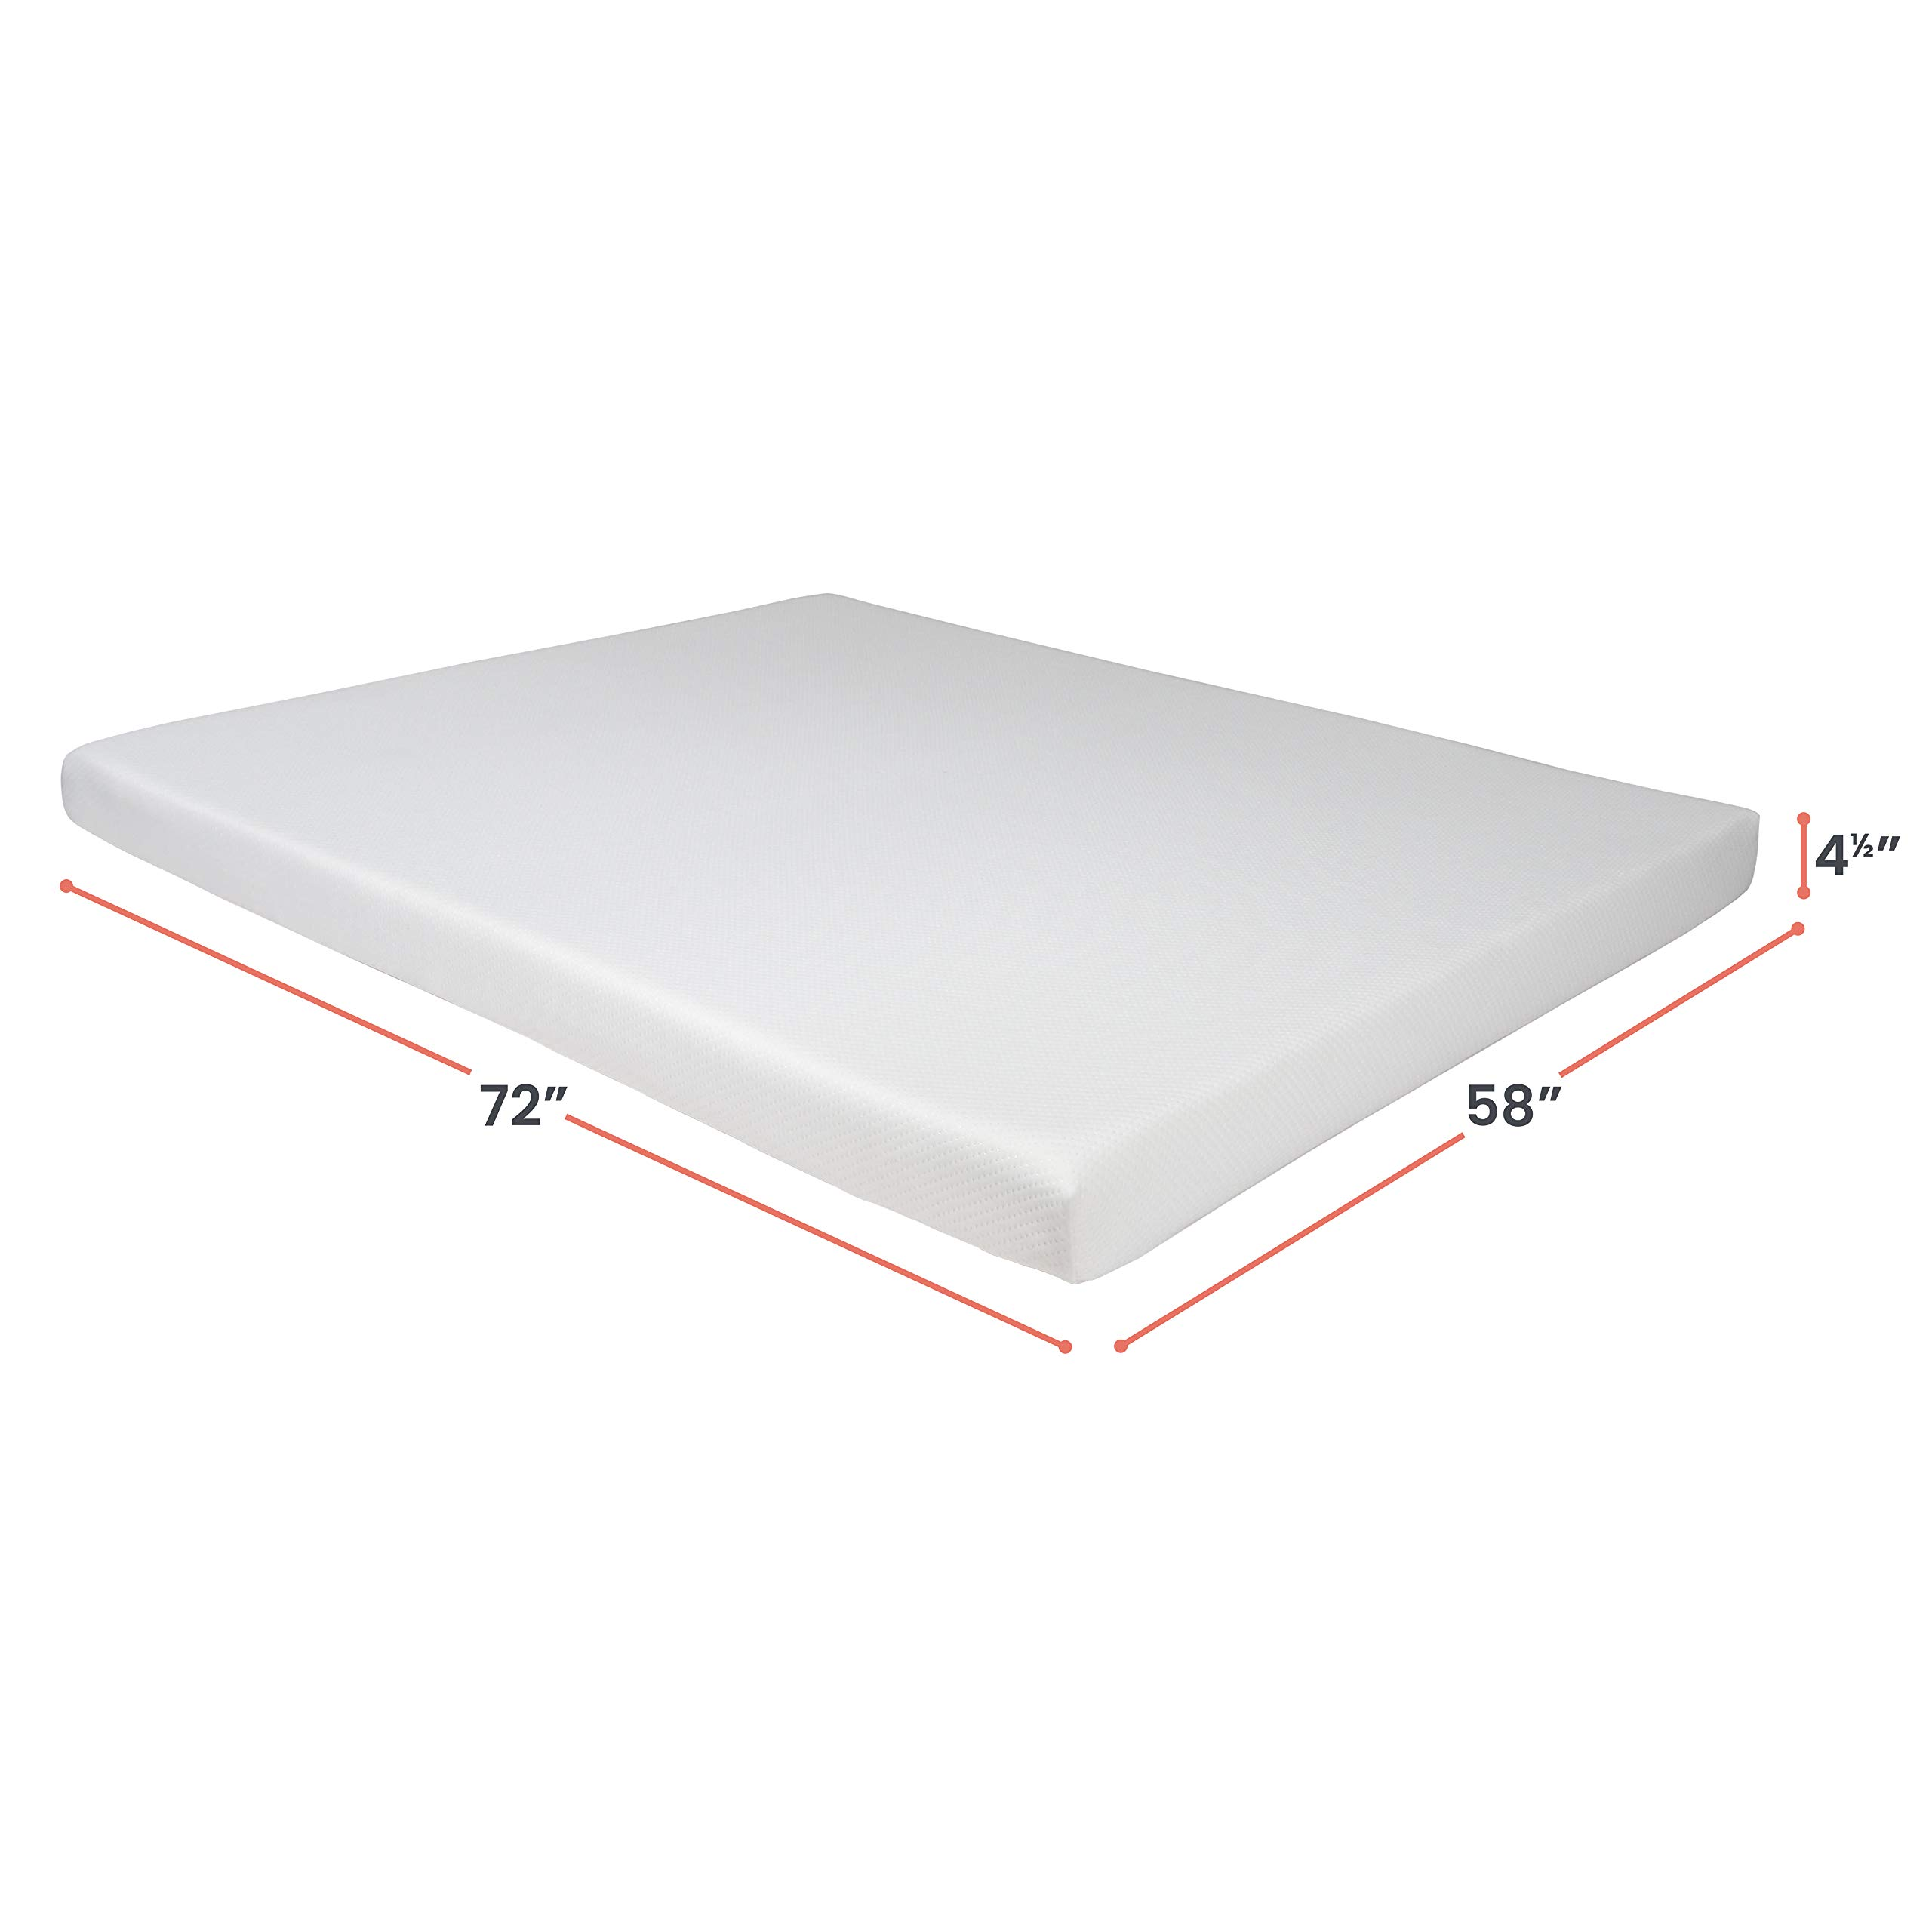 - Milliard 4.5 Inch Memory Foam Replacement Mattress For Queen Size